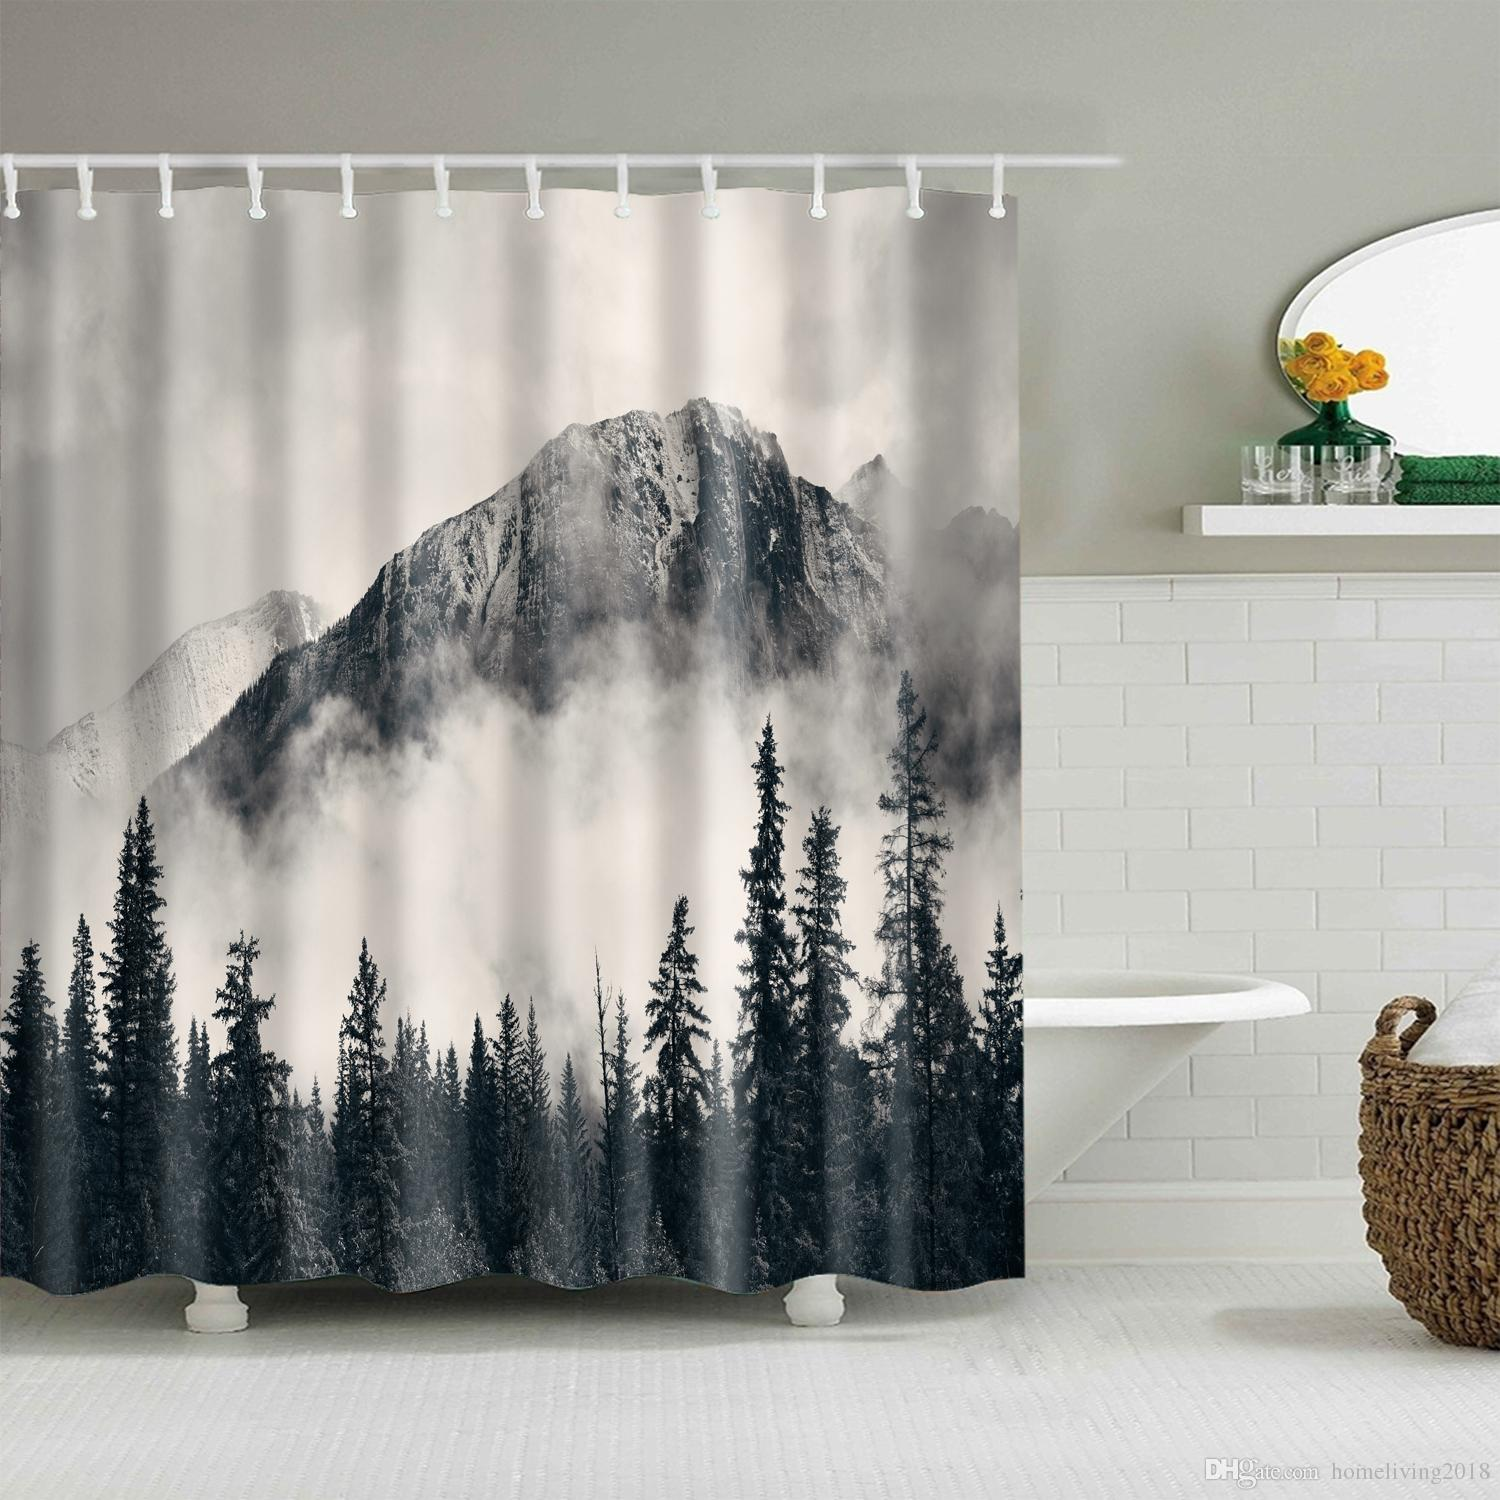 National Parks Shower Curtain Smokey Mountain Cliff Idyllic Photo Art Home Decor